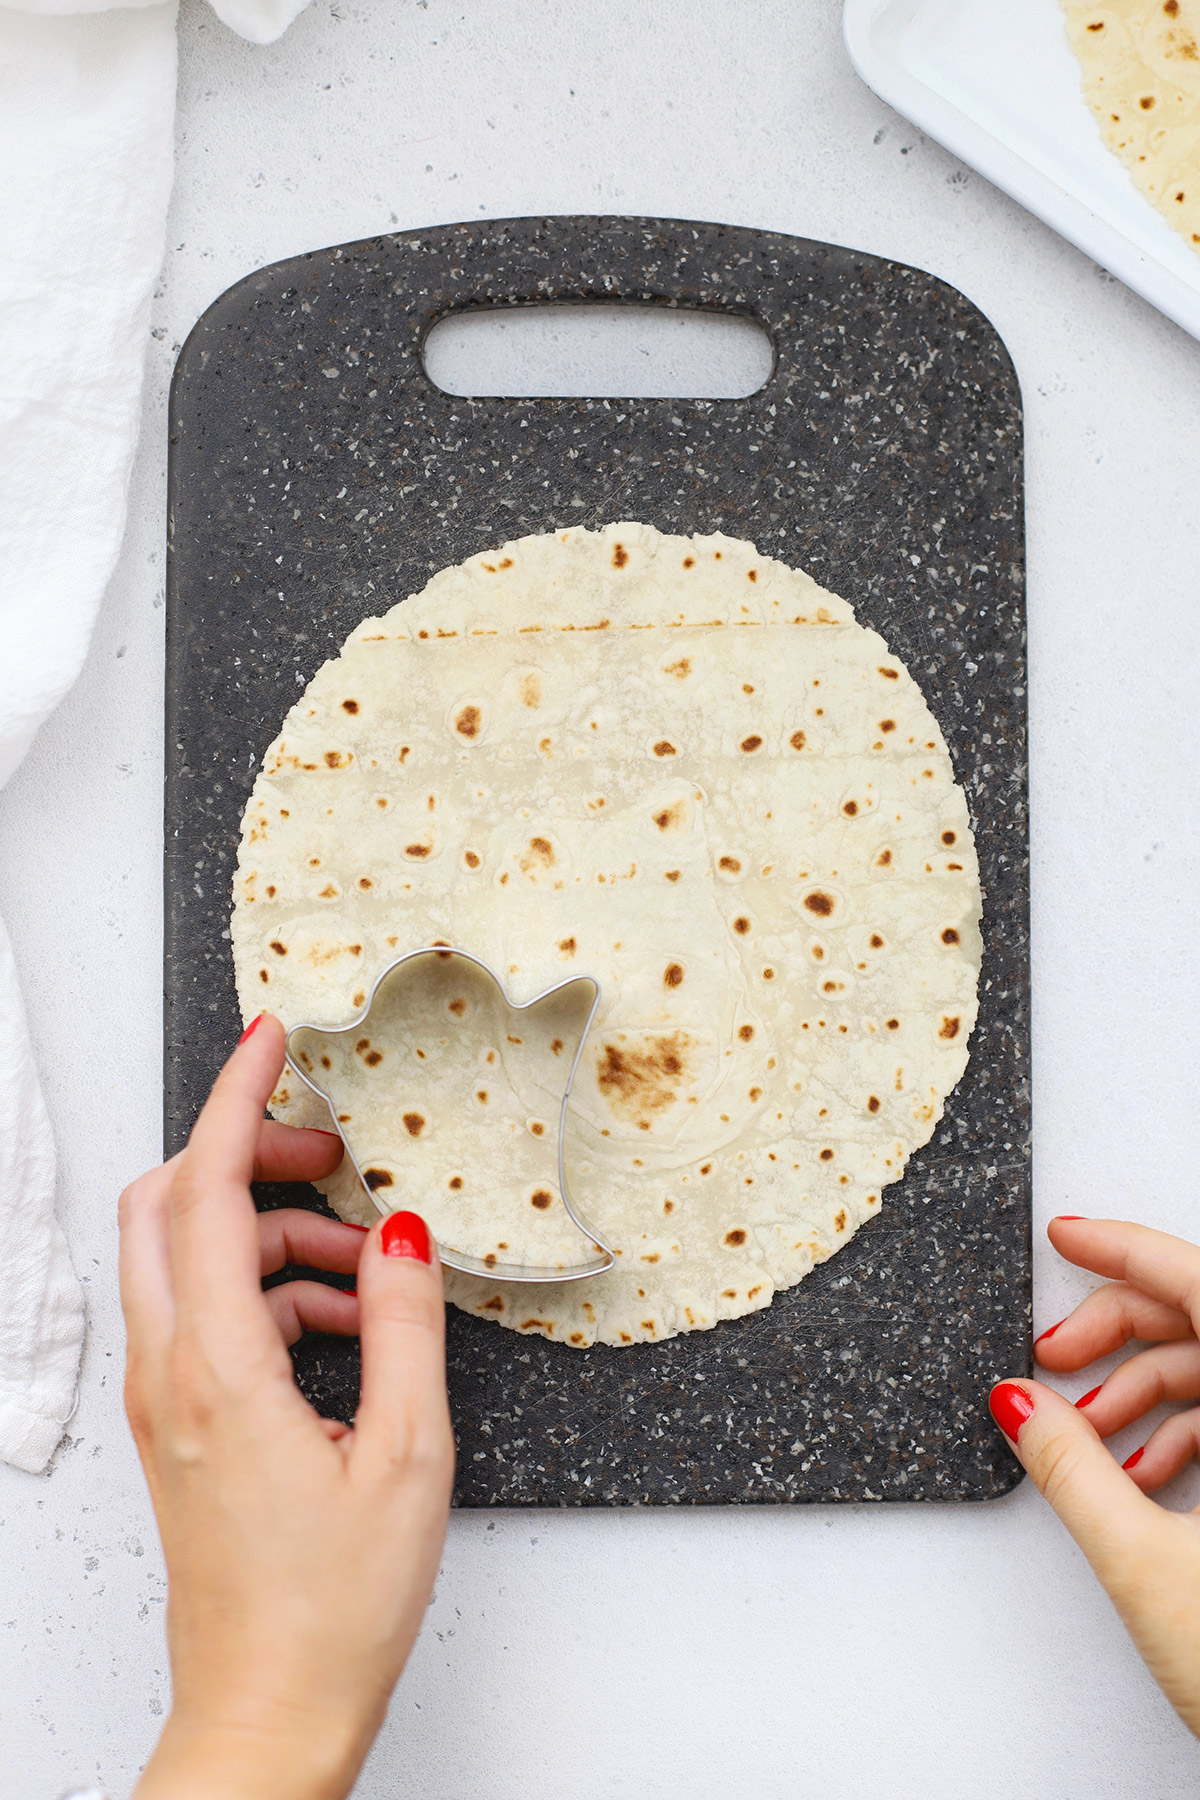 Using a ghost cookie cutter to cut out ghost chips from a gluten-free tortilla